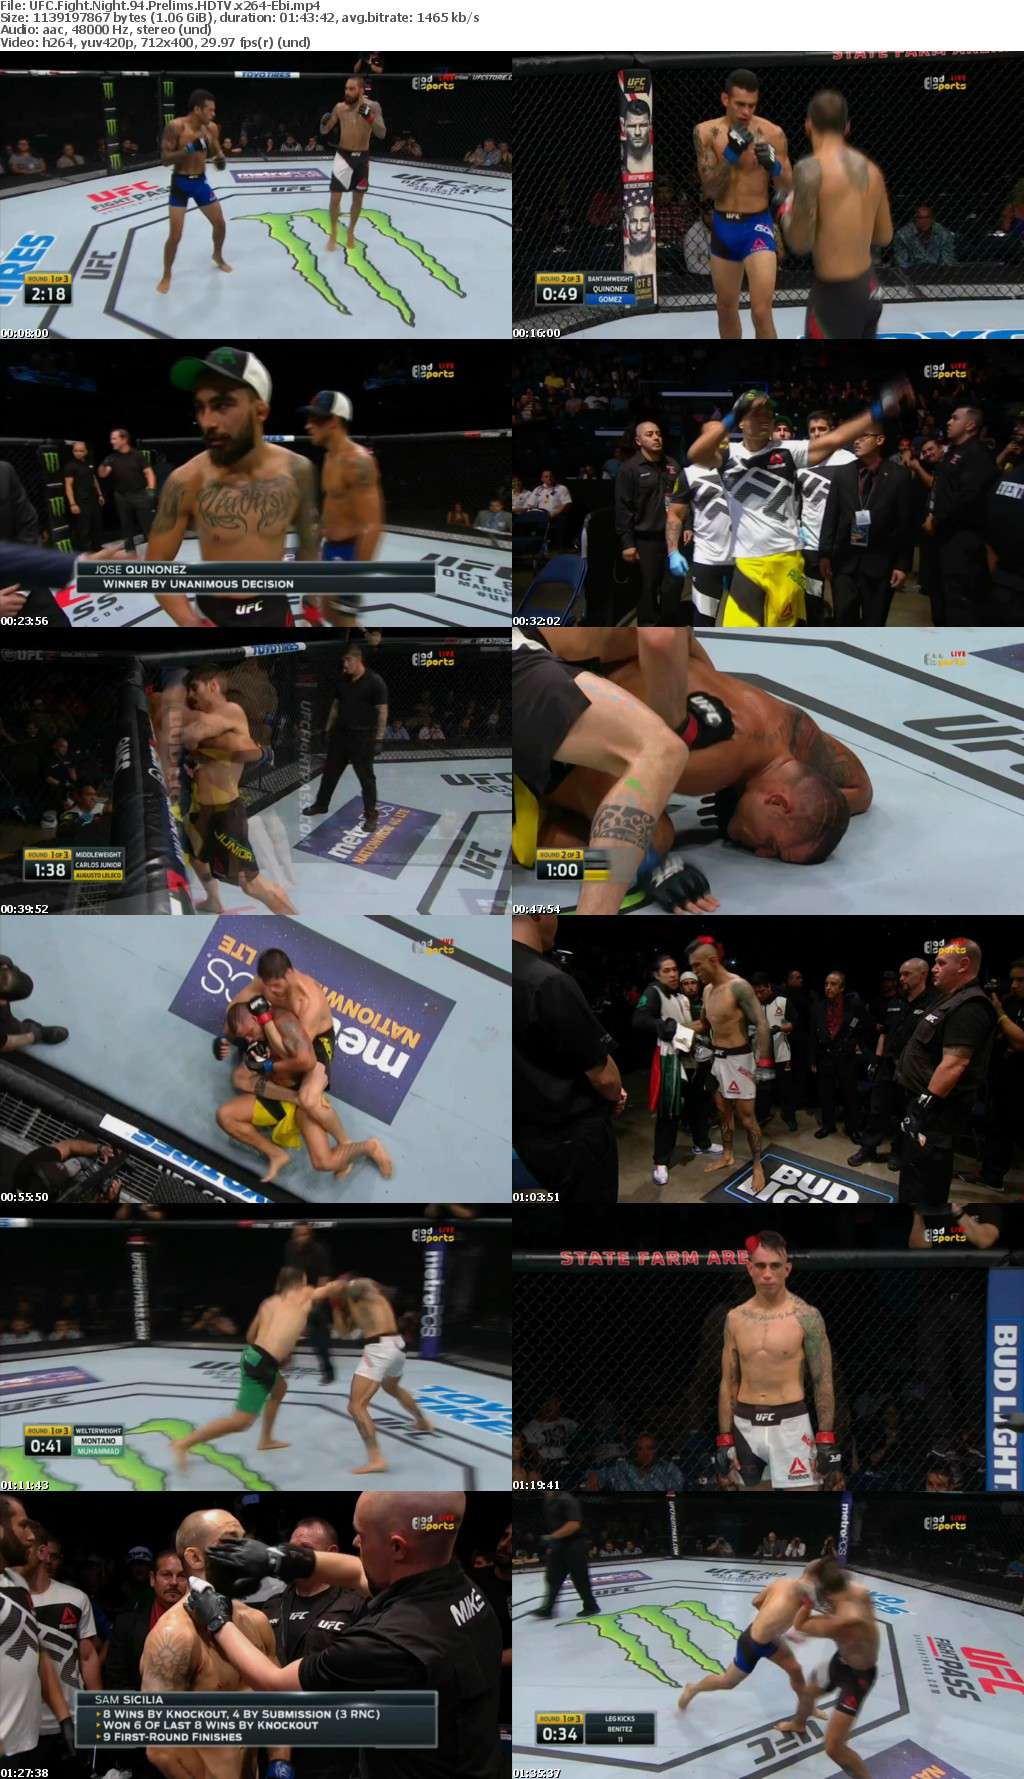 UFC Fight Night 94 Prelims HDTV x264-Ebi